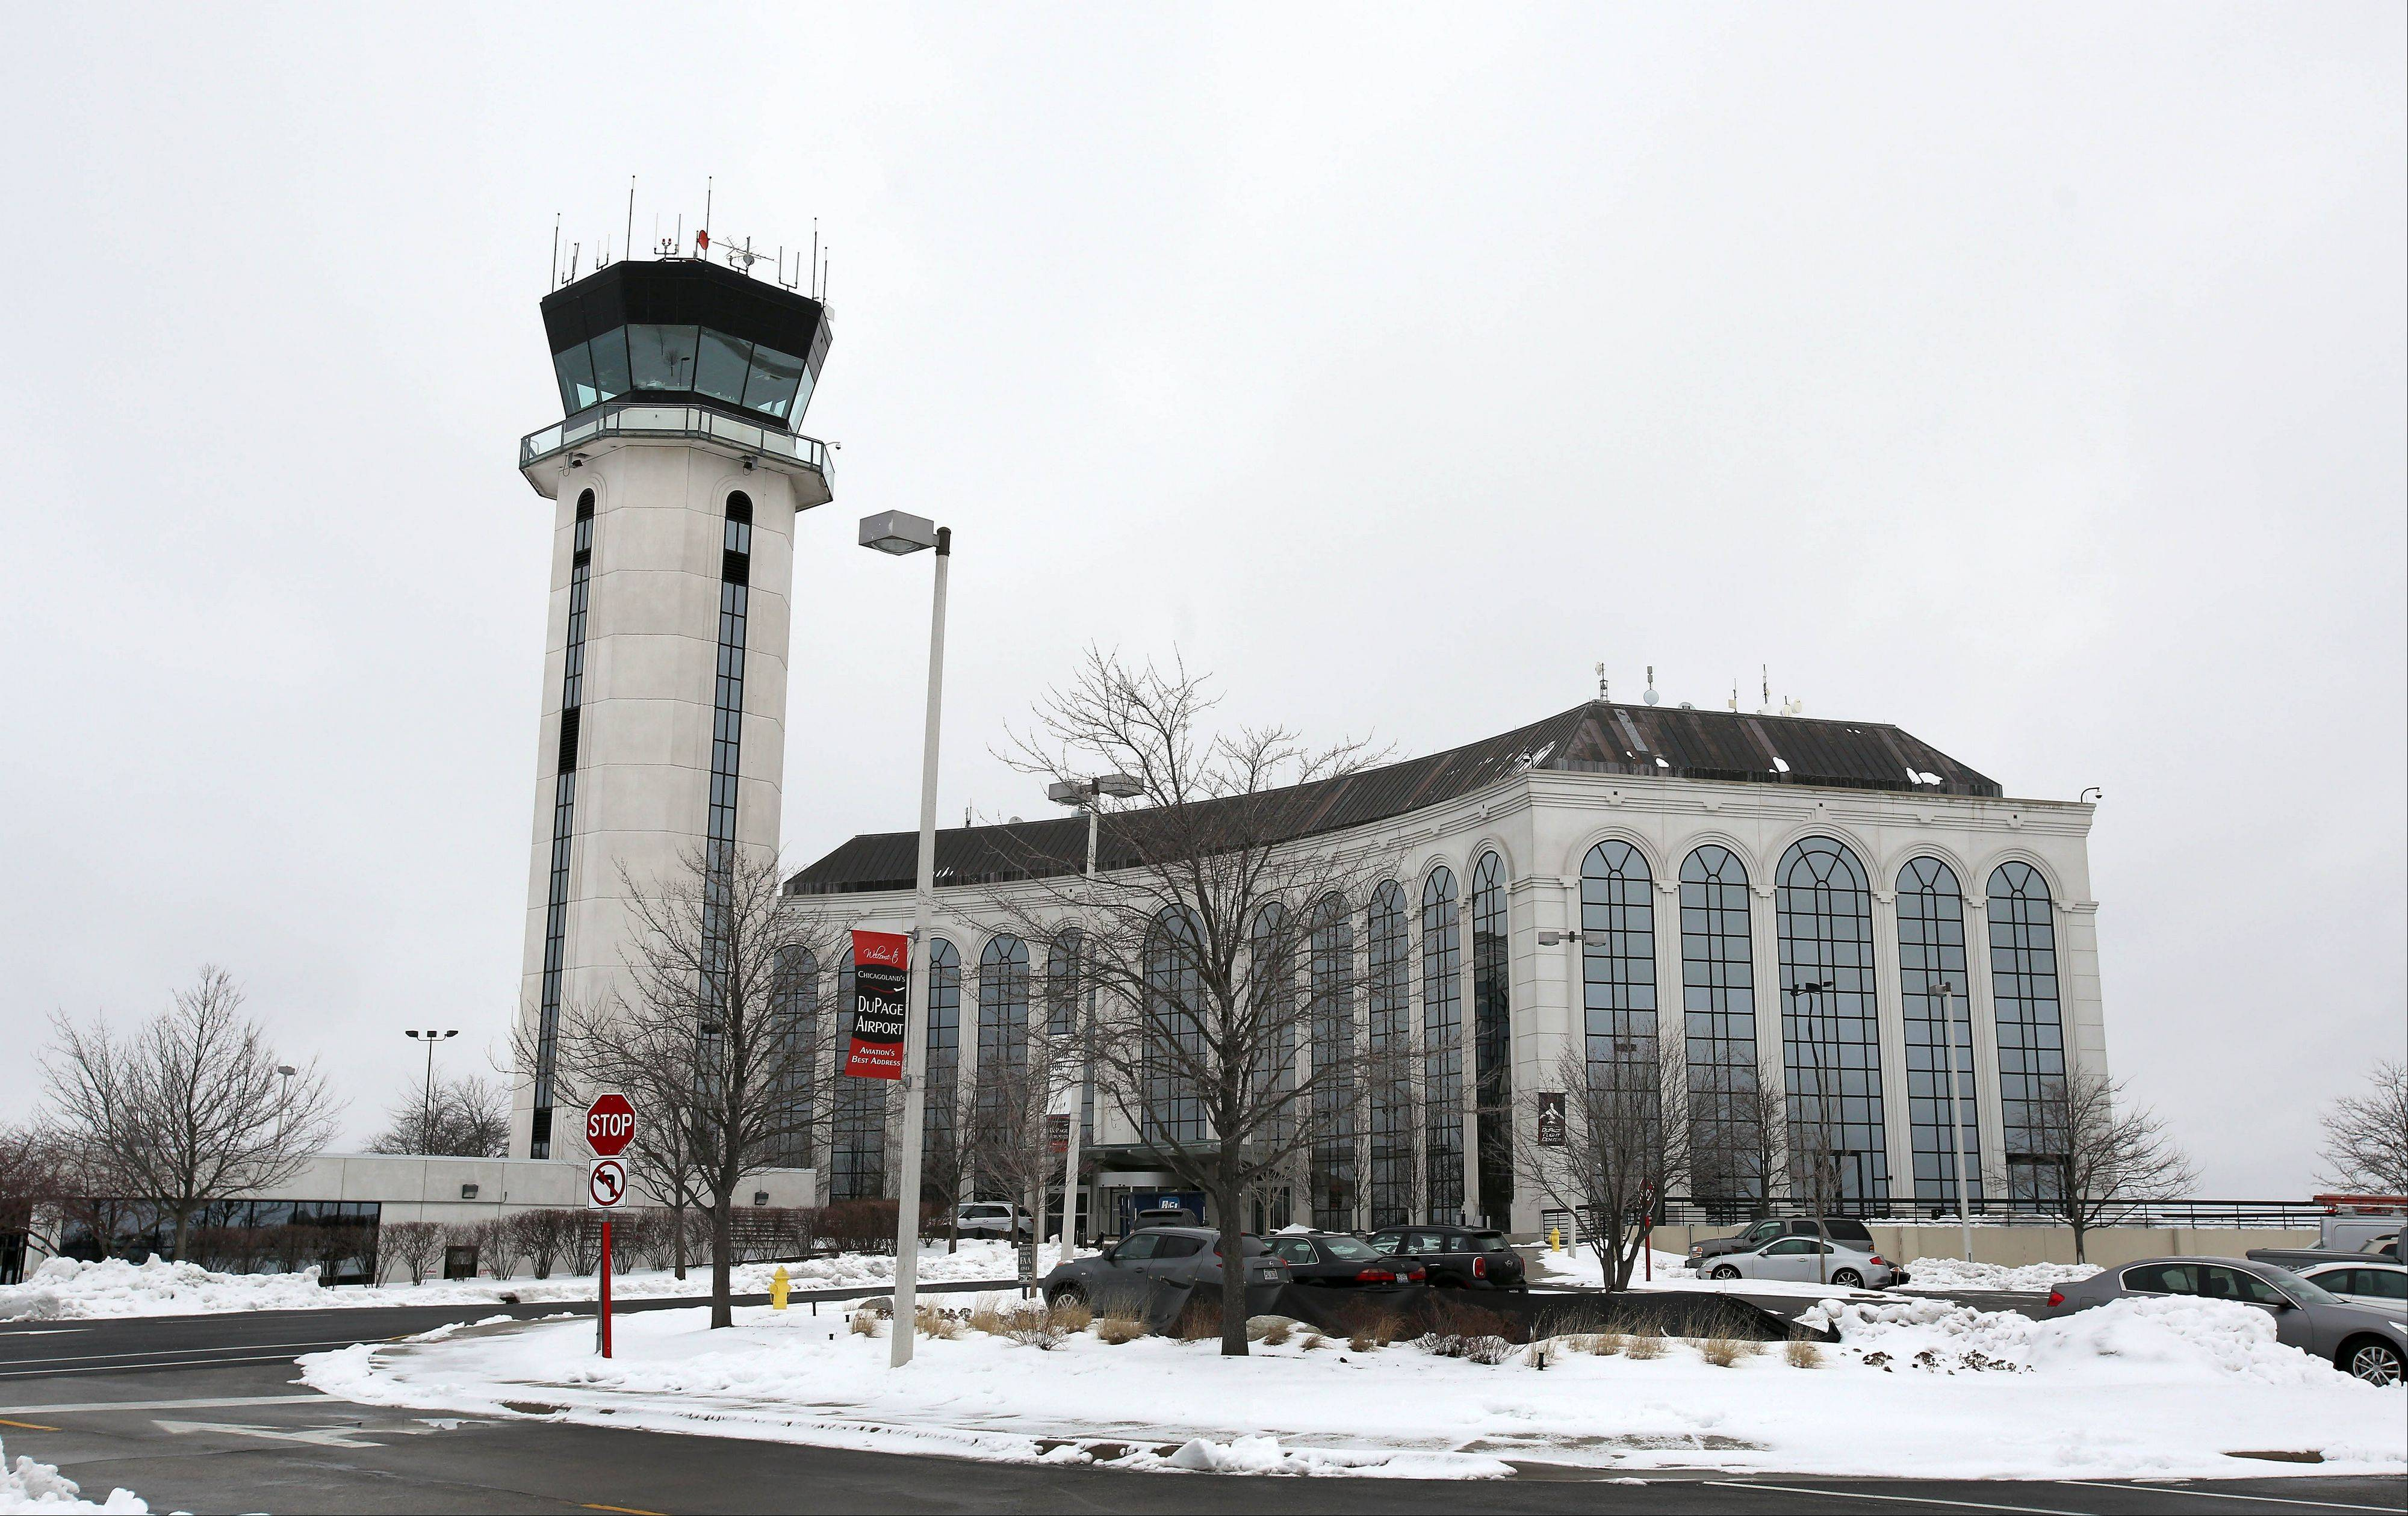 Bev Horne/bhorne@dailyherald.comThe DuPage County Airport in West Chicago could see its tower closed if cuts triggered by the sequester occur.